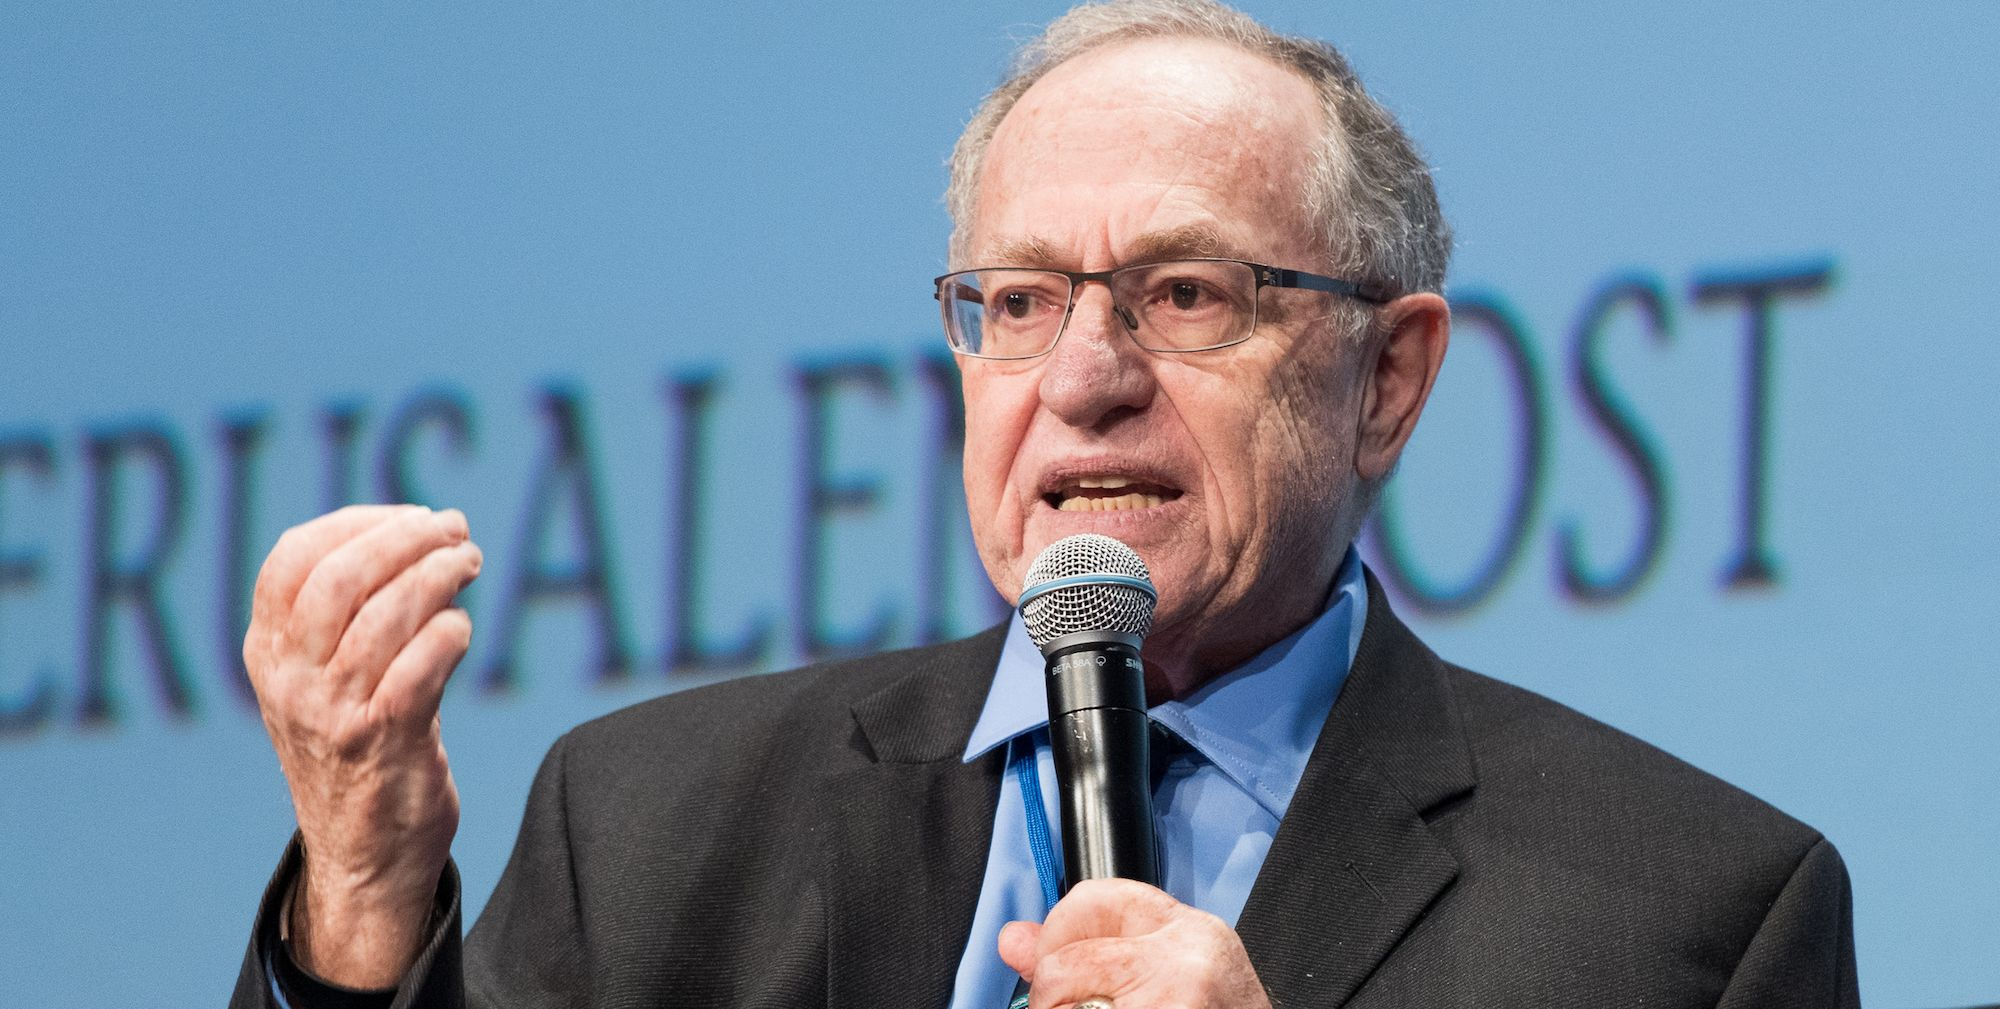 Alan Dershowitz Is Just the Latest Public Figure Who Forgot What Shame Feels Like